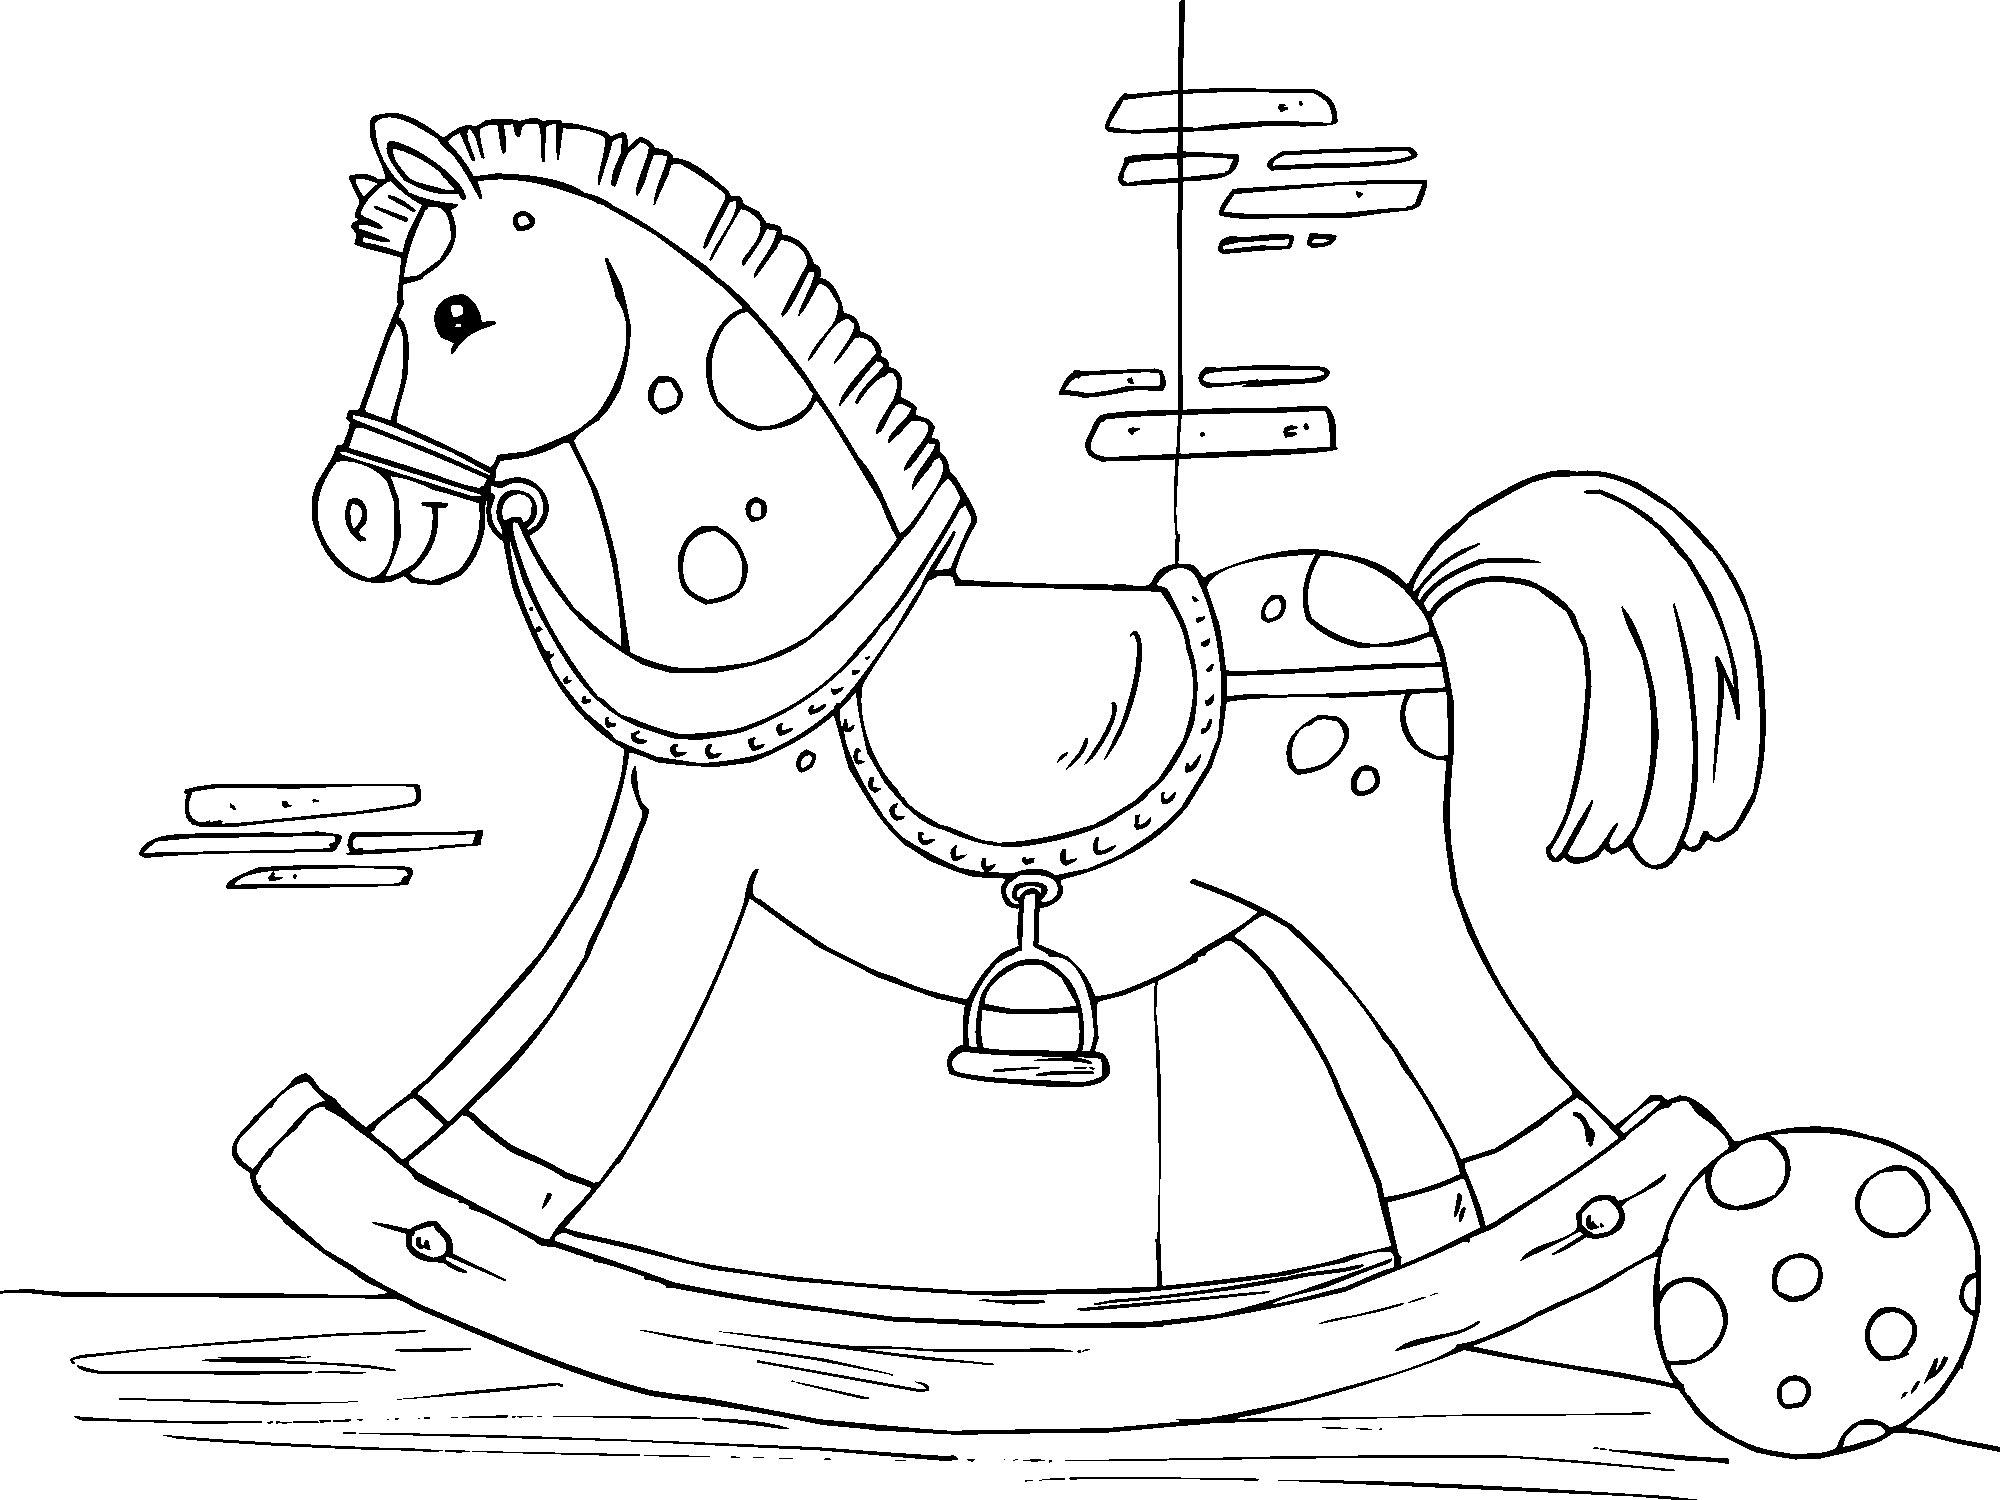 rocking horse coloring page rocking horse. toy animal coloring ... - Baby Rocking Horse Coloring Pages